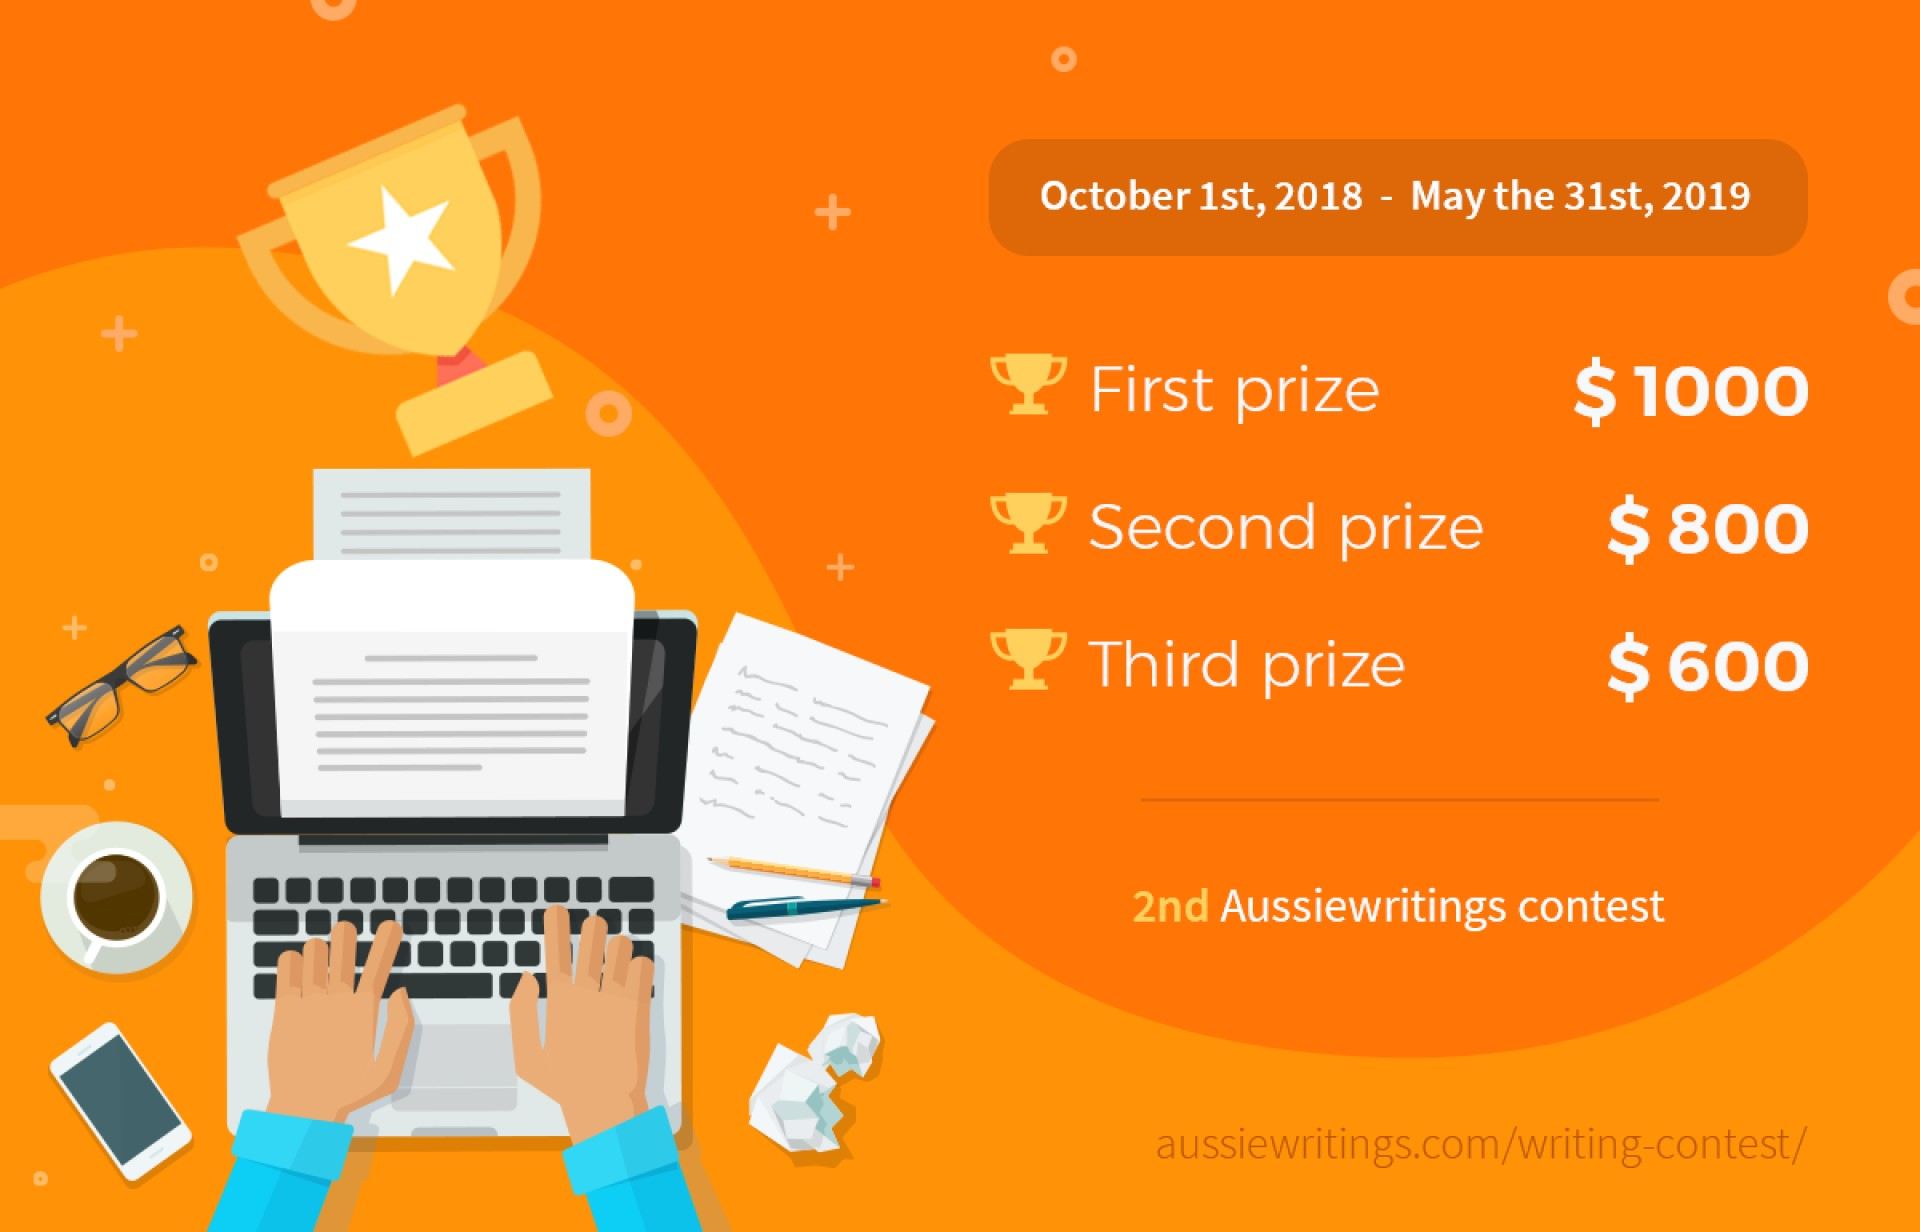 005 Essay Example Writing Incredible Contest Competition For College Students By Essayhub Sample Mechanics 1920